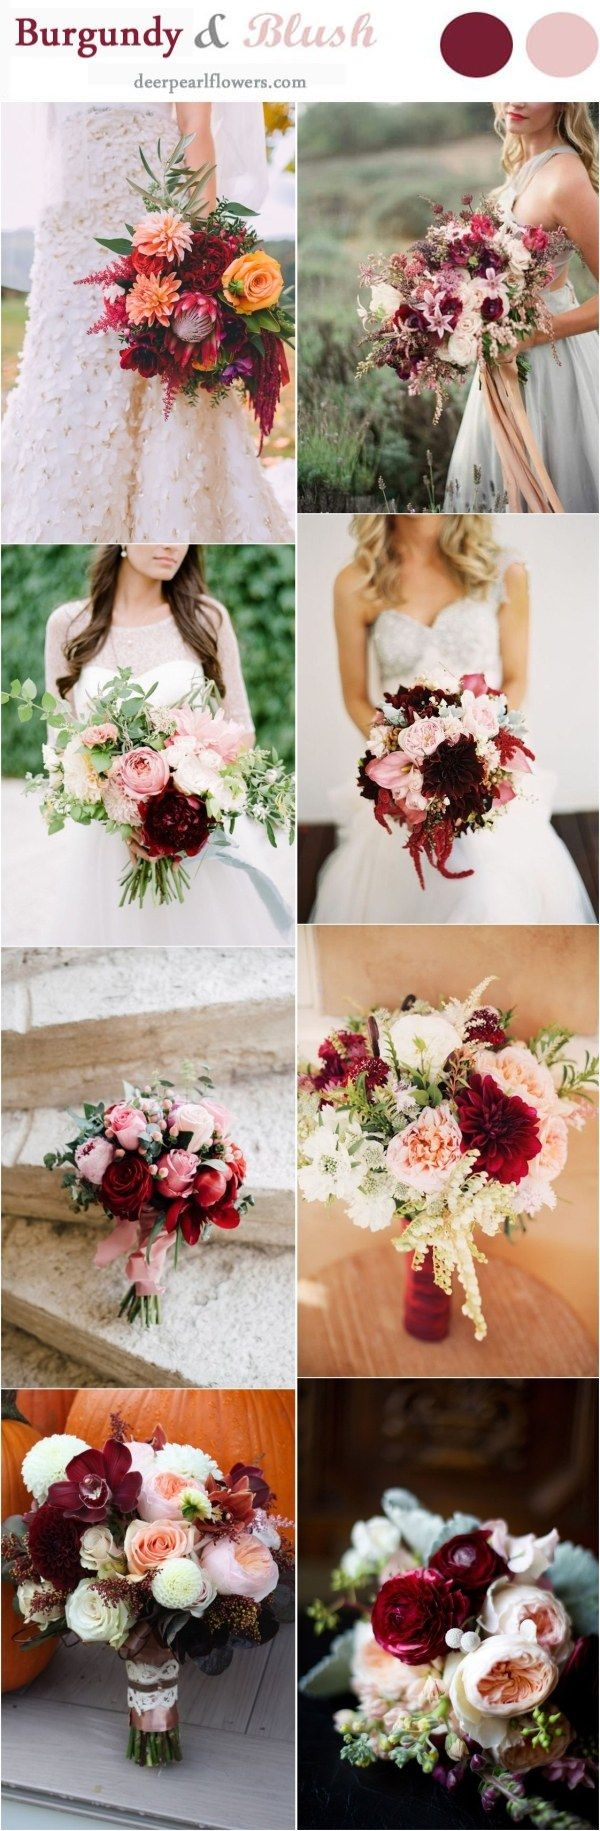 wedding ideas for fall pinterest 25 best ideas about fall wedding flowers on 27911